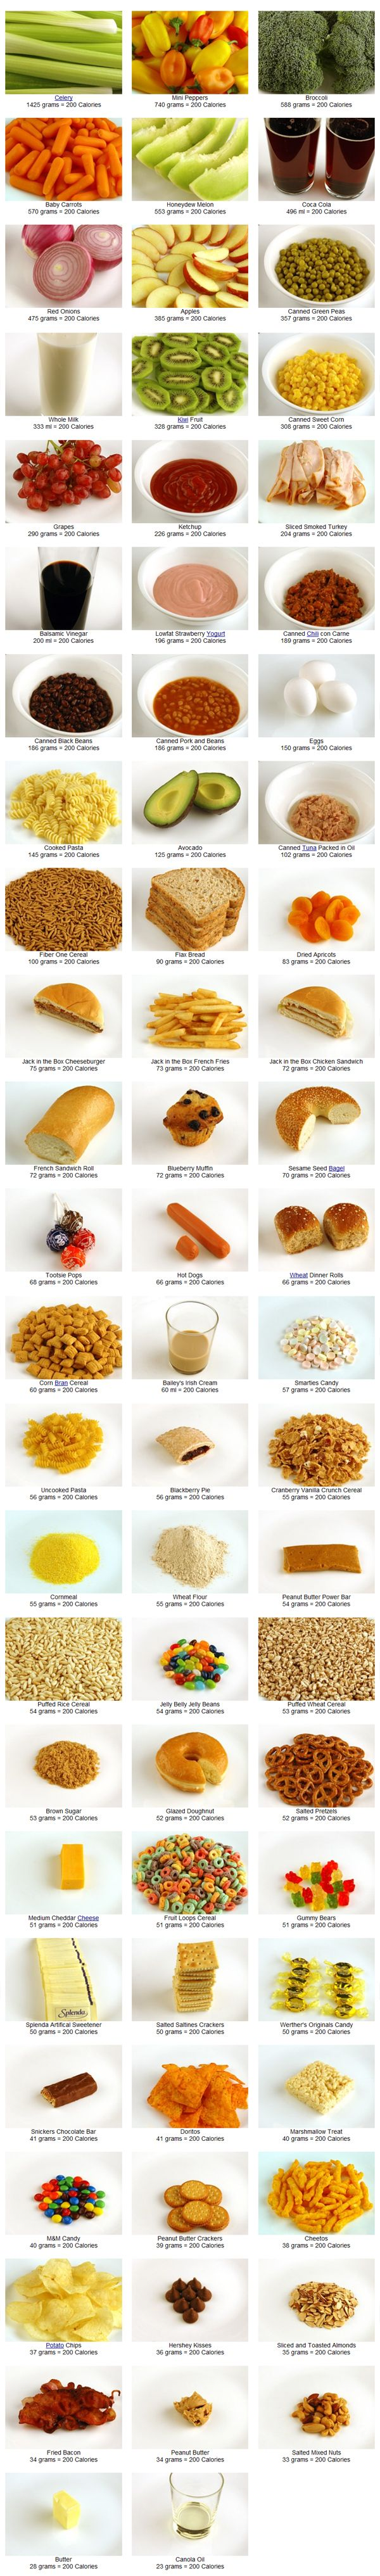 List Of Foods Under 200 Calories In General Best Foods At The Top